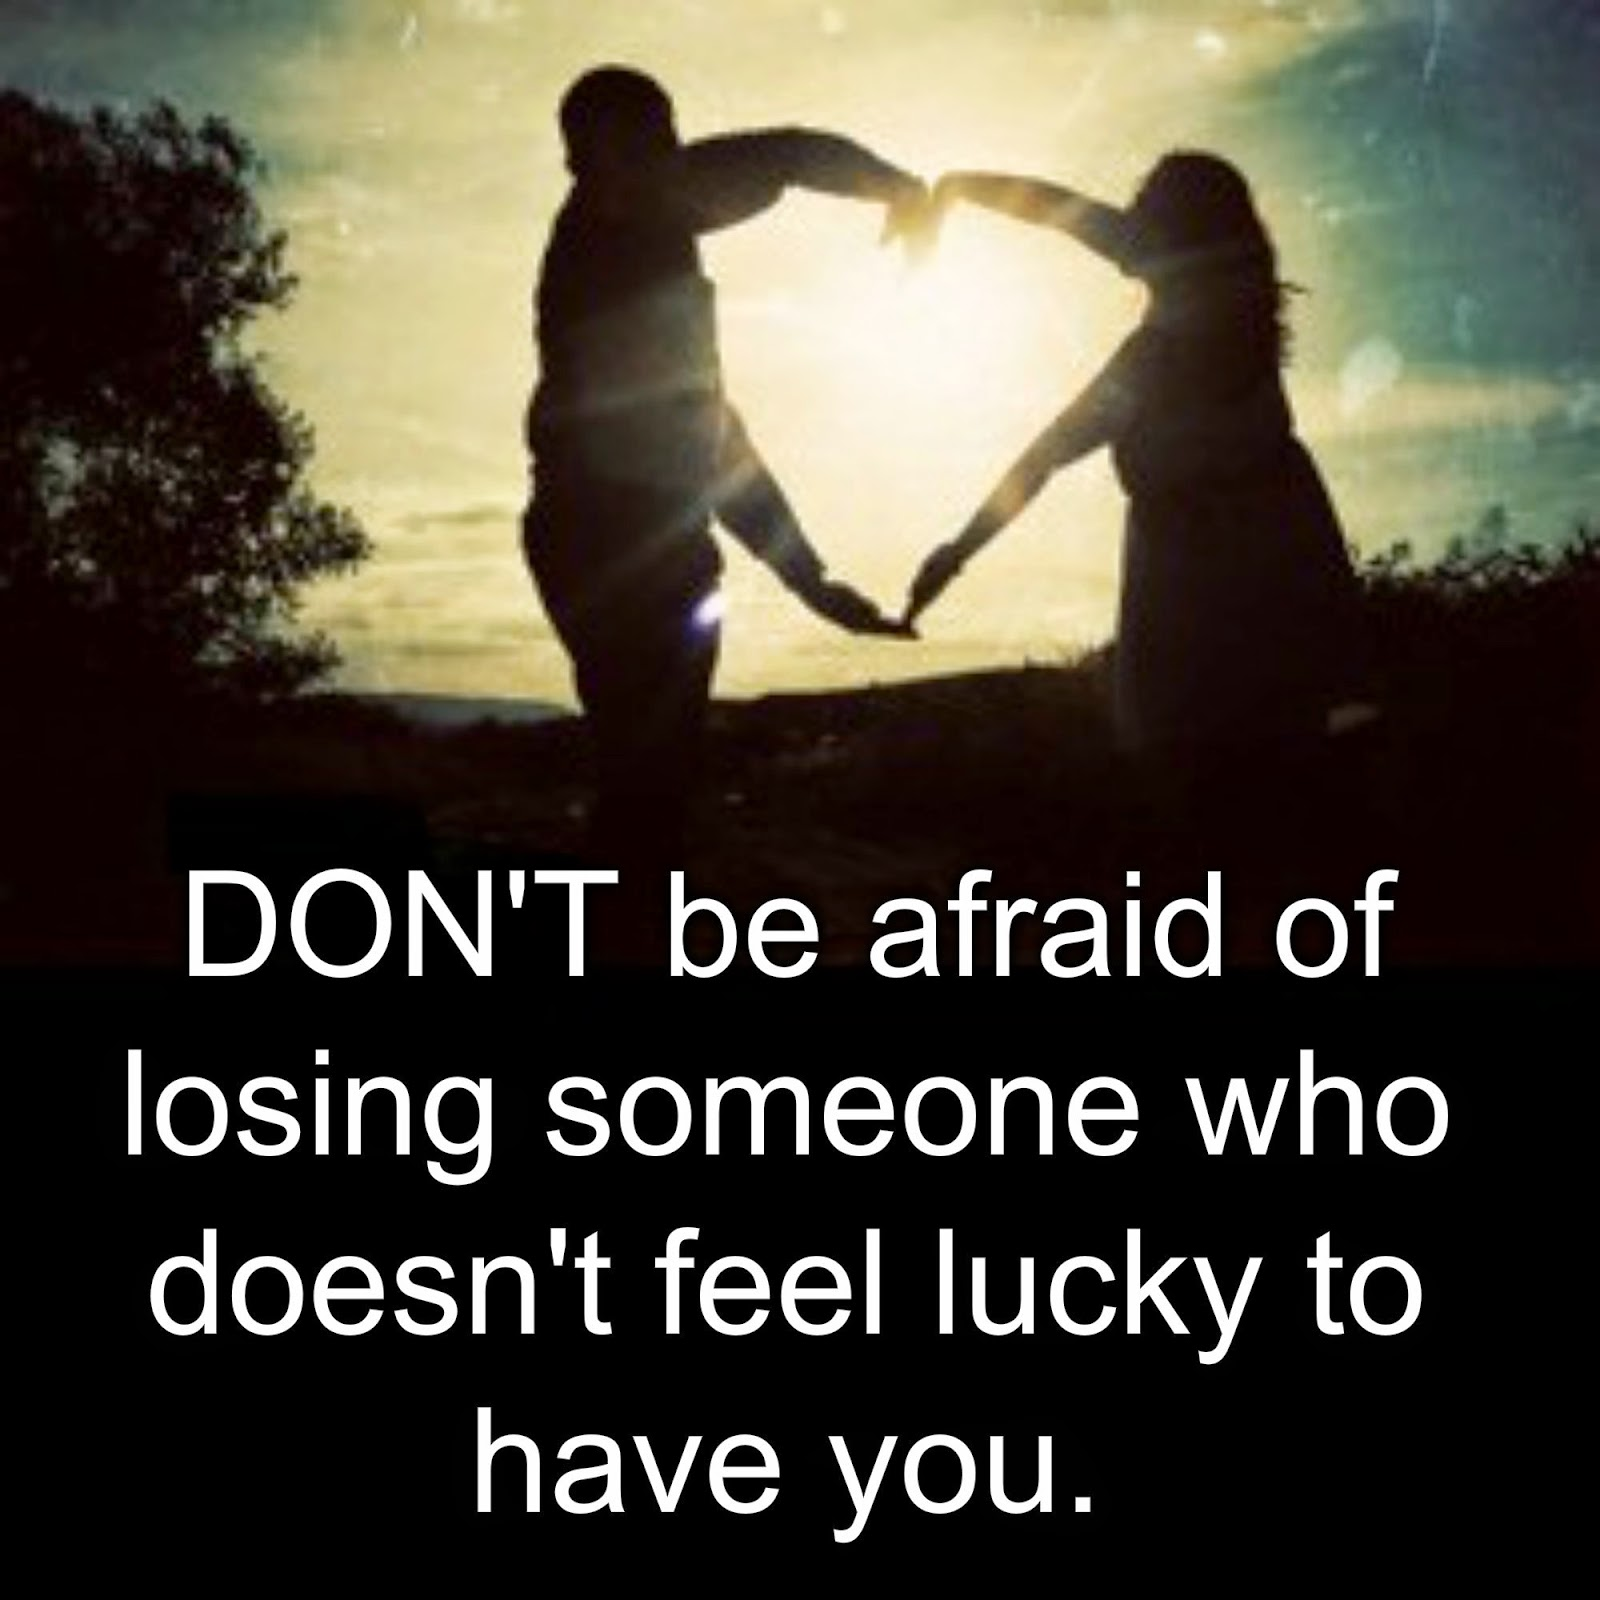 Quotes About Being Afraid To Lose Someone: Awesome Quotes: Don't Be Afraid Of Losing Someone